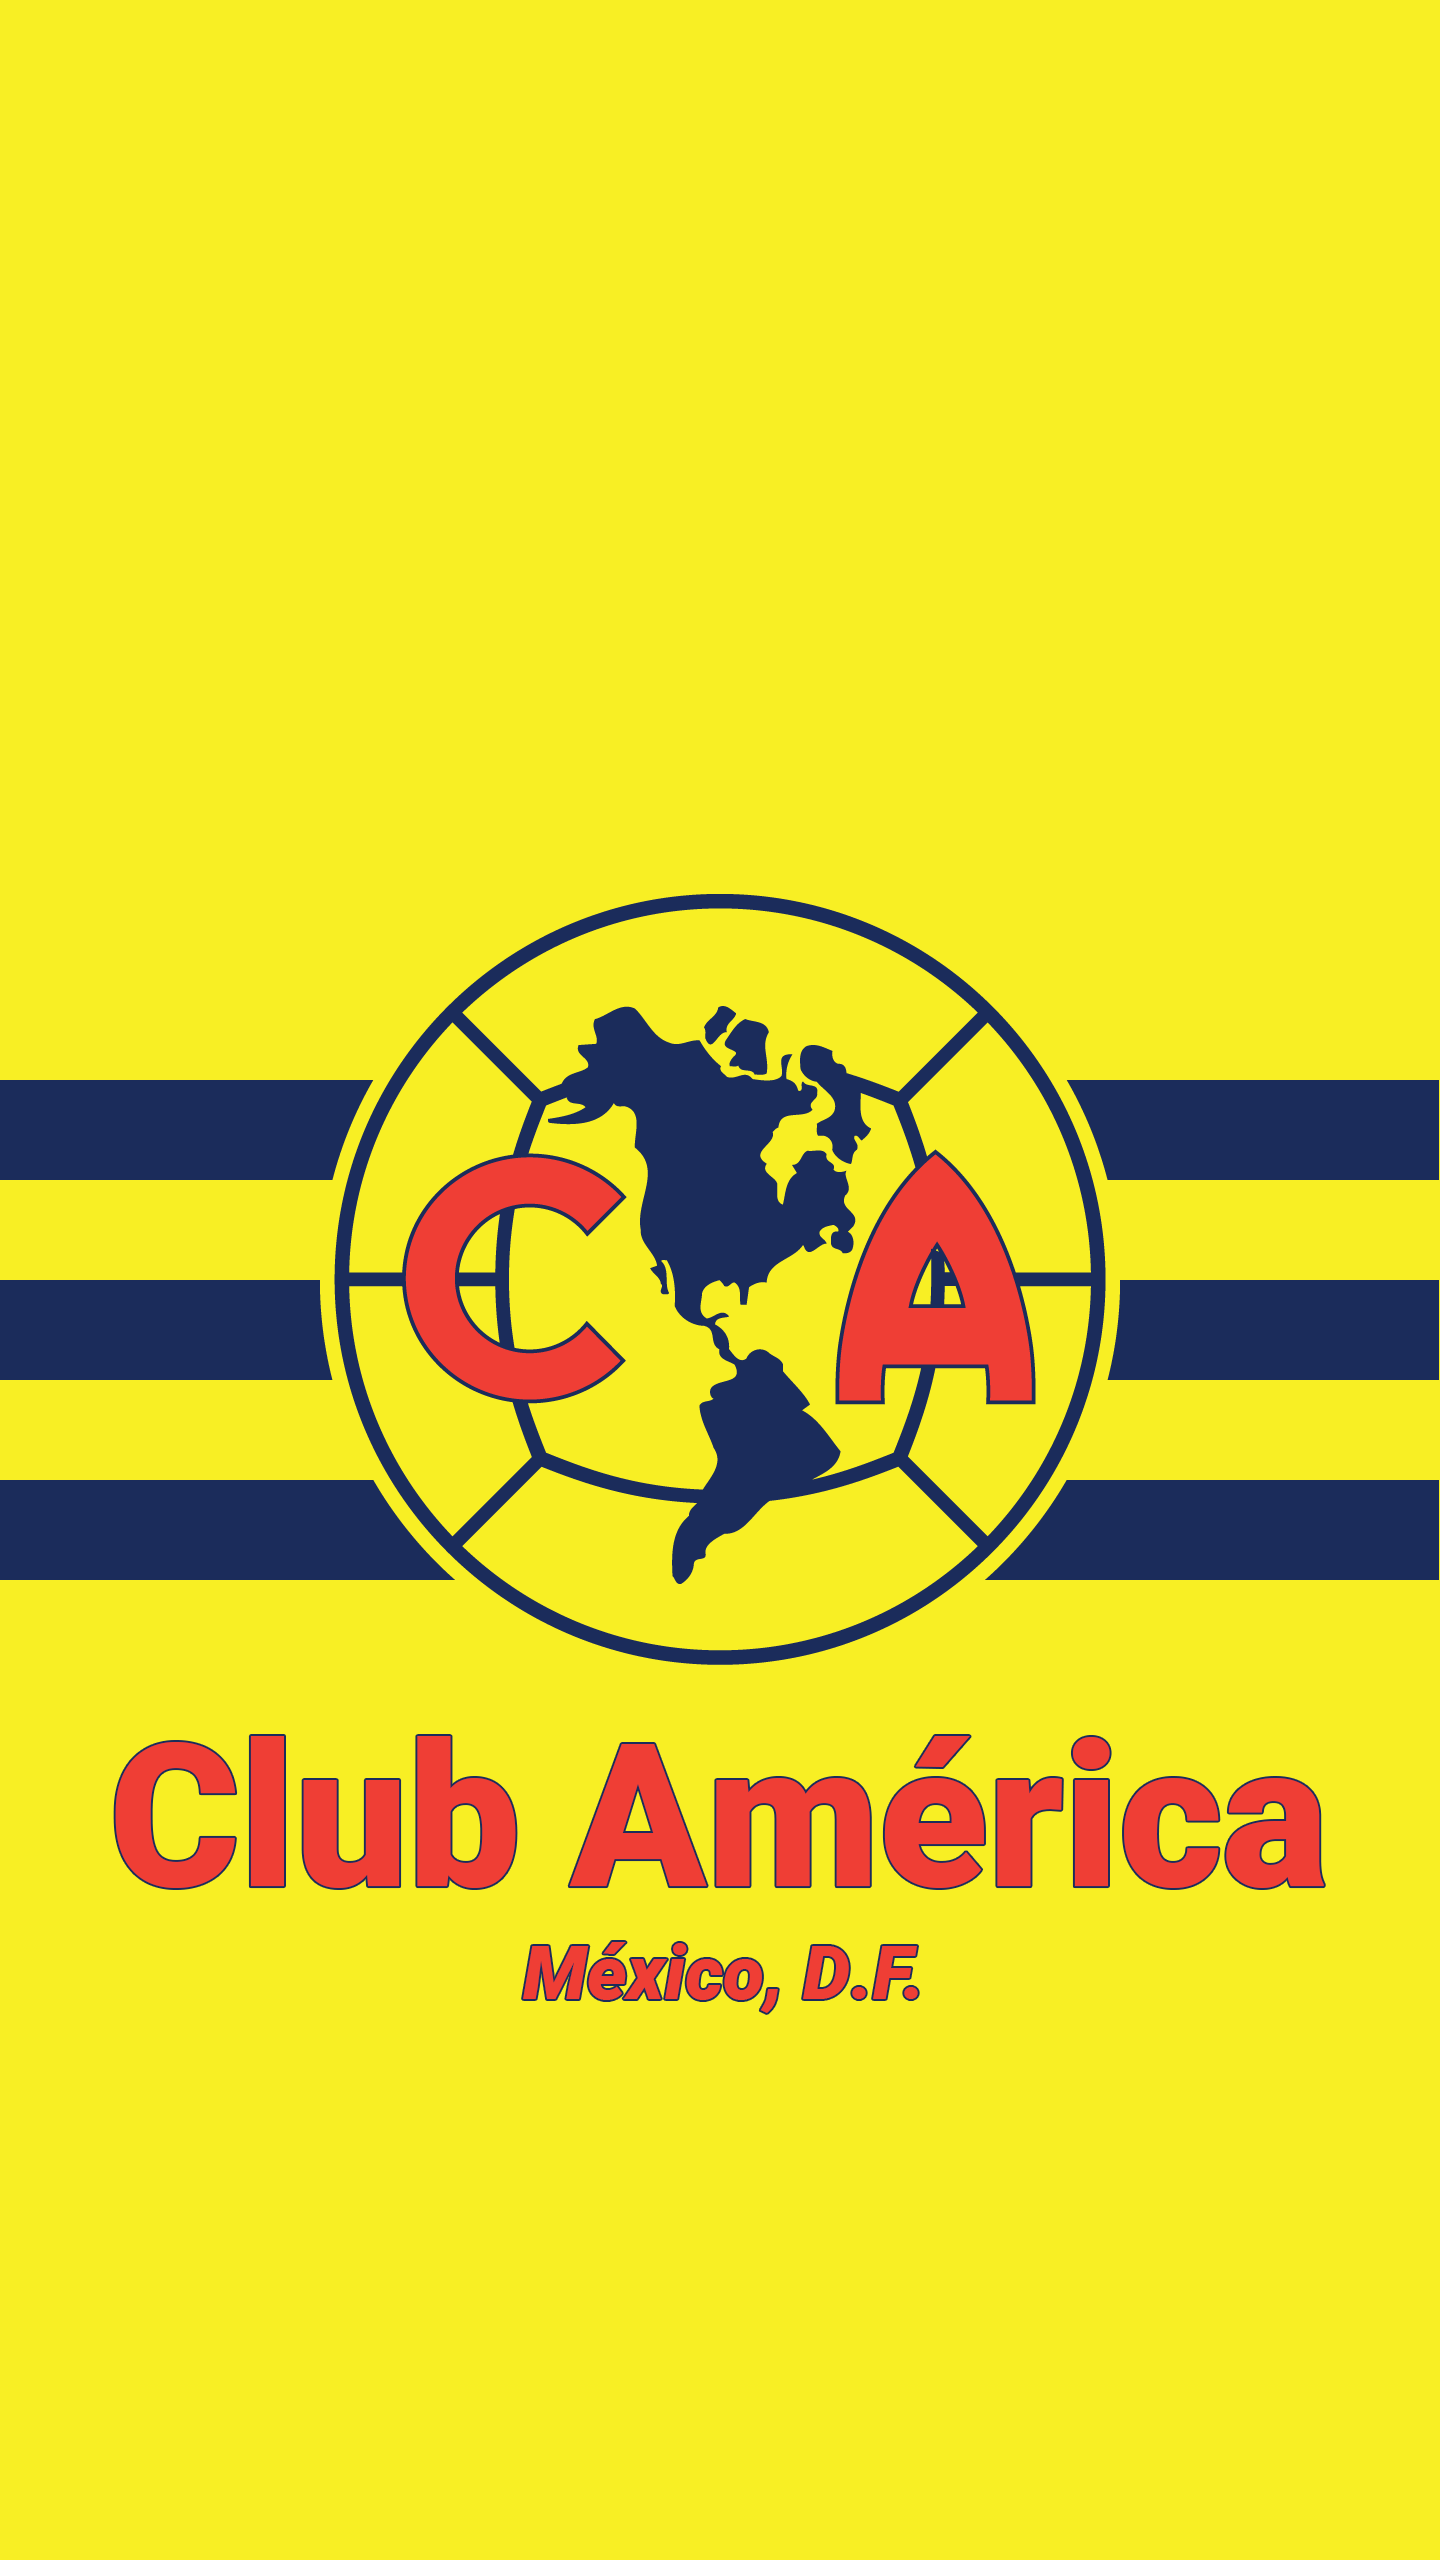 Club America Wallpaper - Club America , HD Wallpaper & Backgrounds